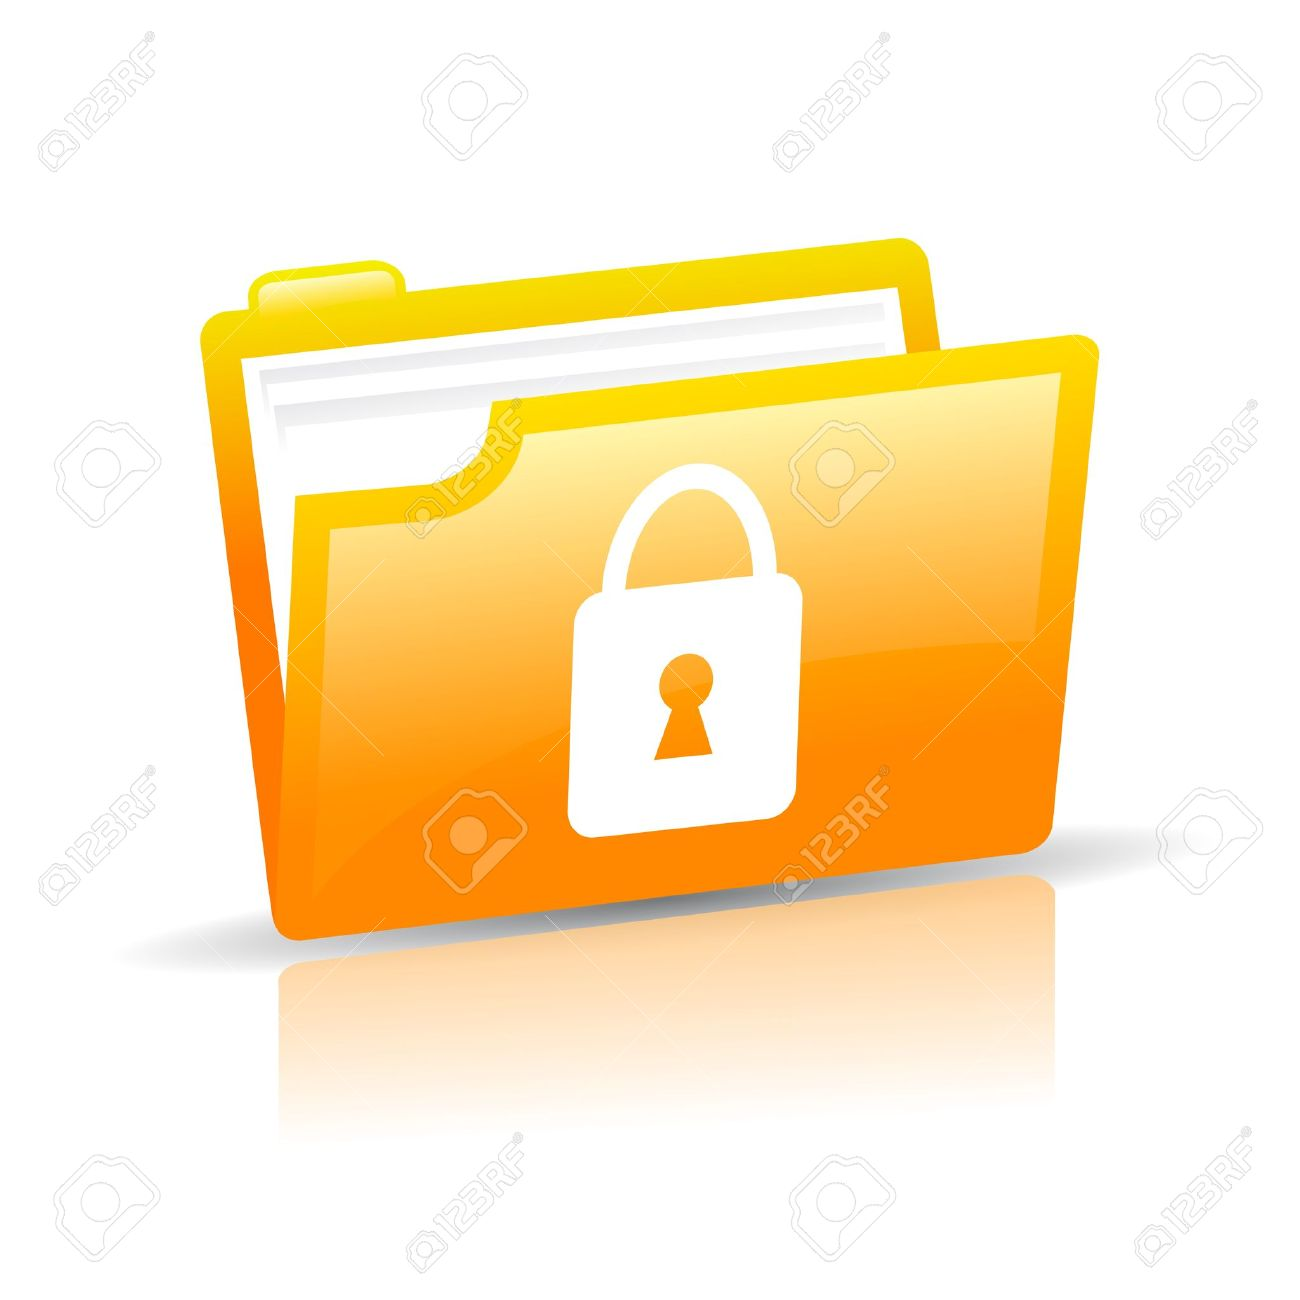 Personal data protection Stock Vector - 16035631